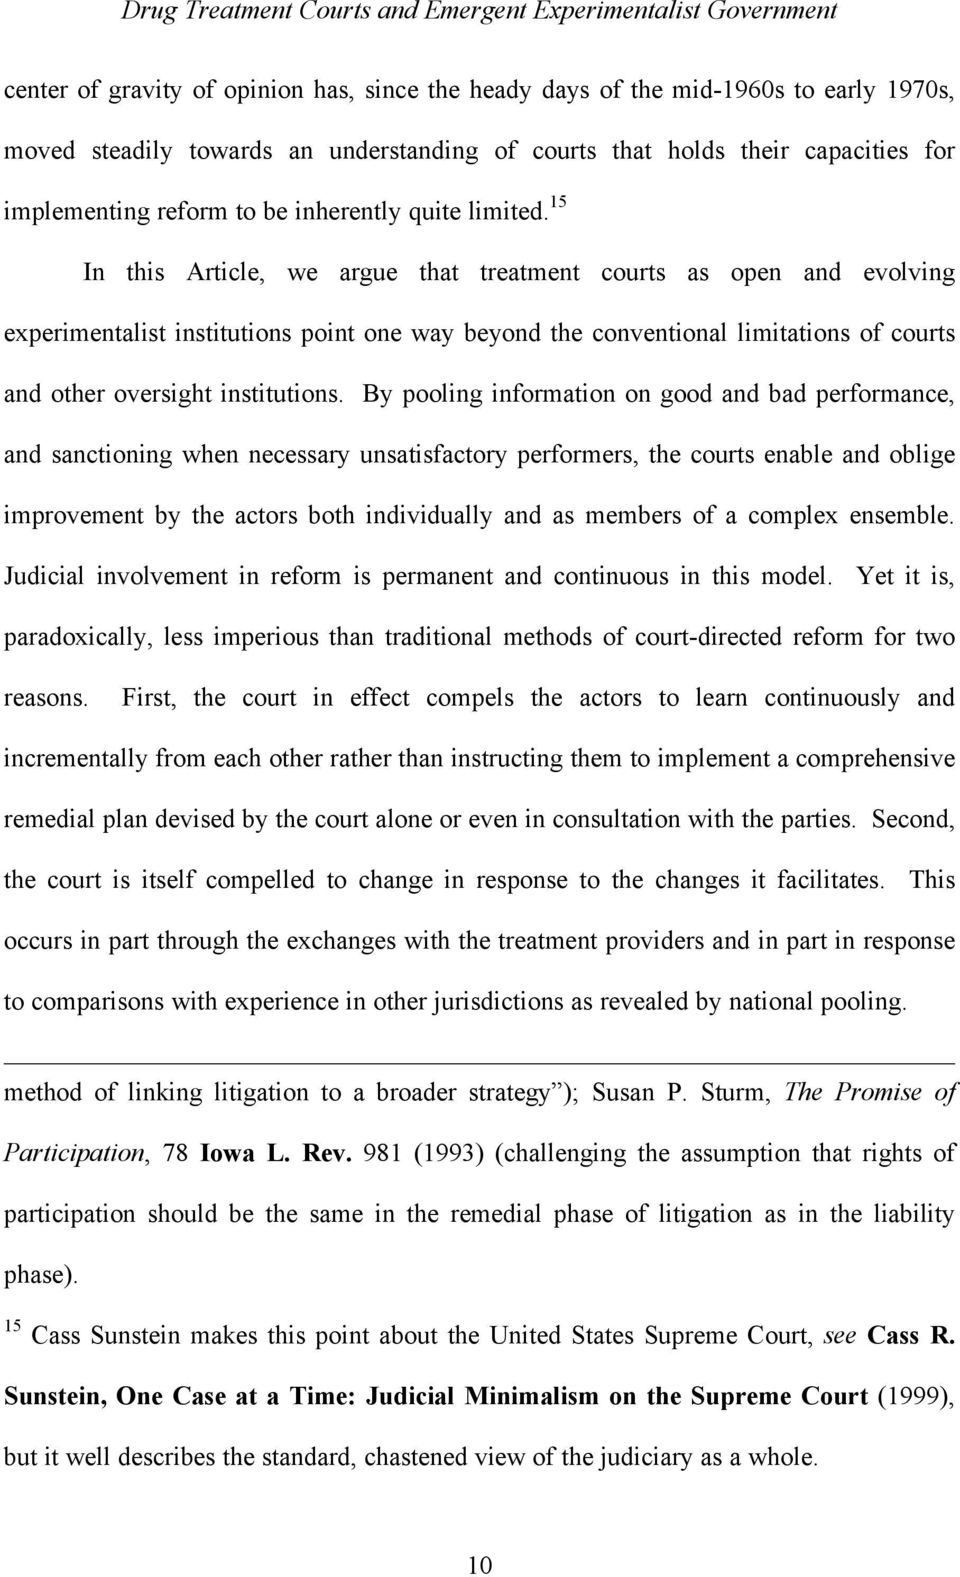 15 In this Article, we argue that treatment courts as open and evolving experimentalist institutions point one way beyond the conventional limitations of courts and other oversight institutions.